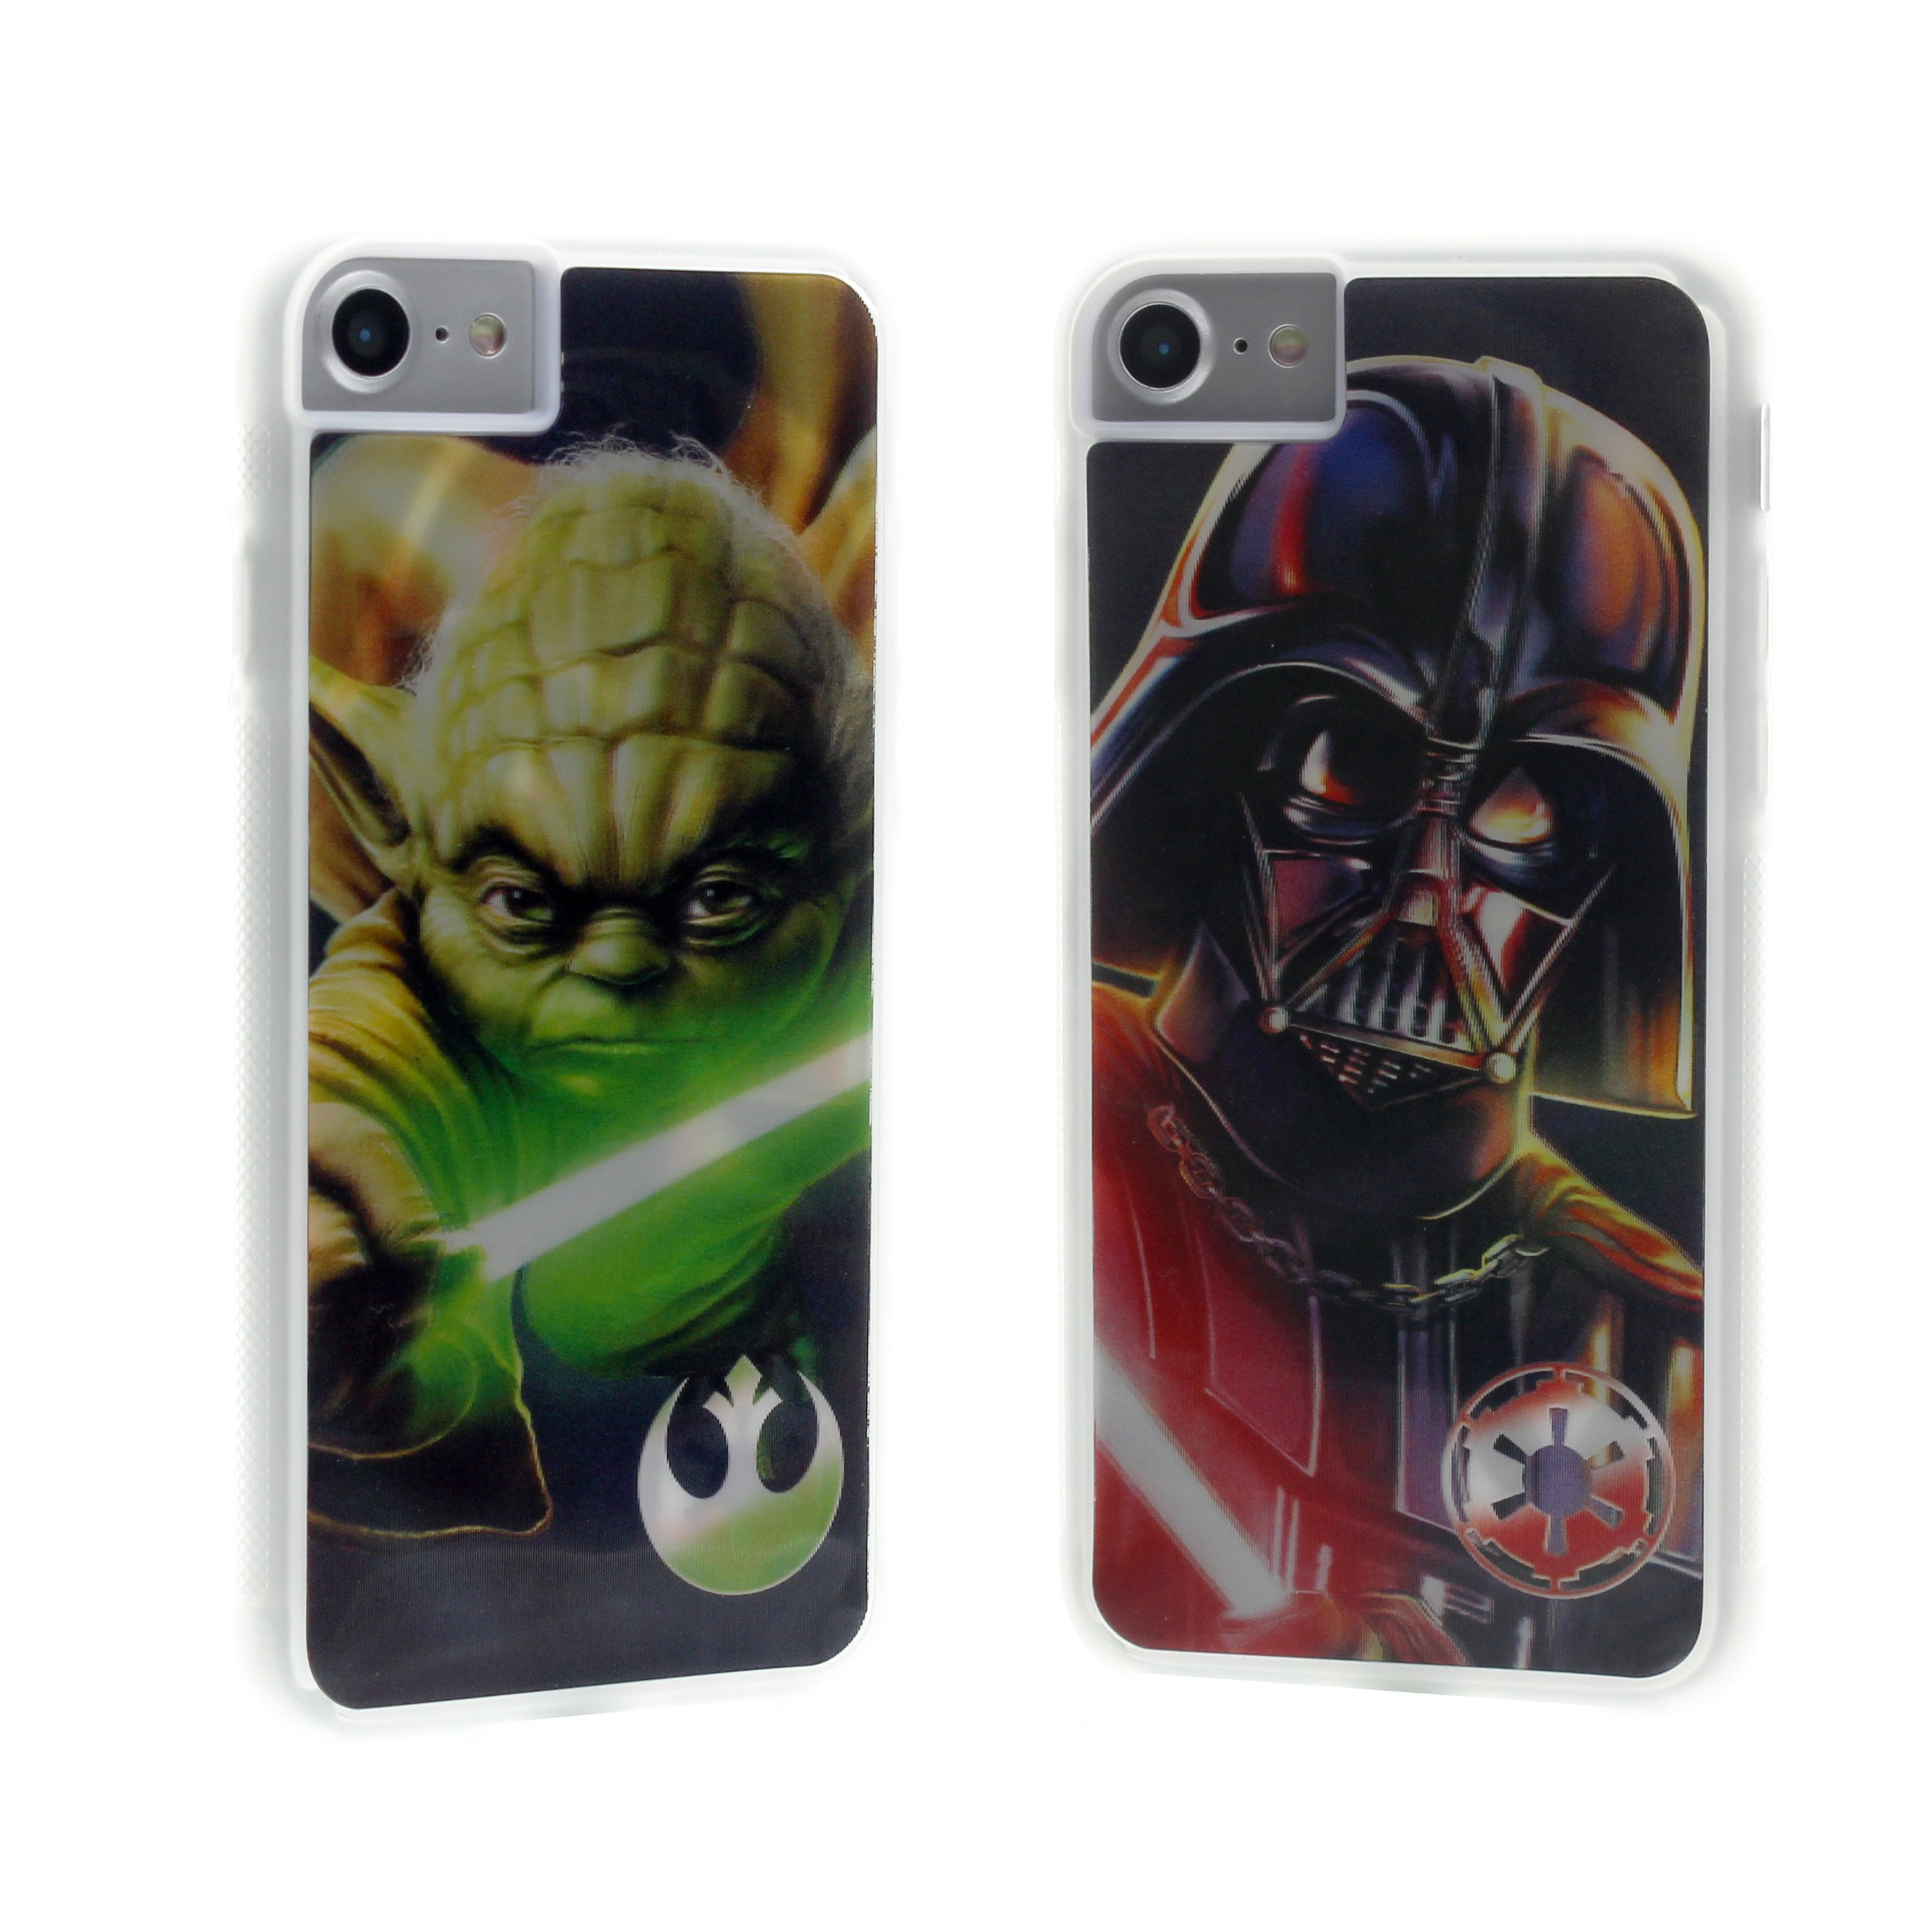 iPhone 6/7/8 Star Wars Yoda/Vader Lenticular Case Image